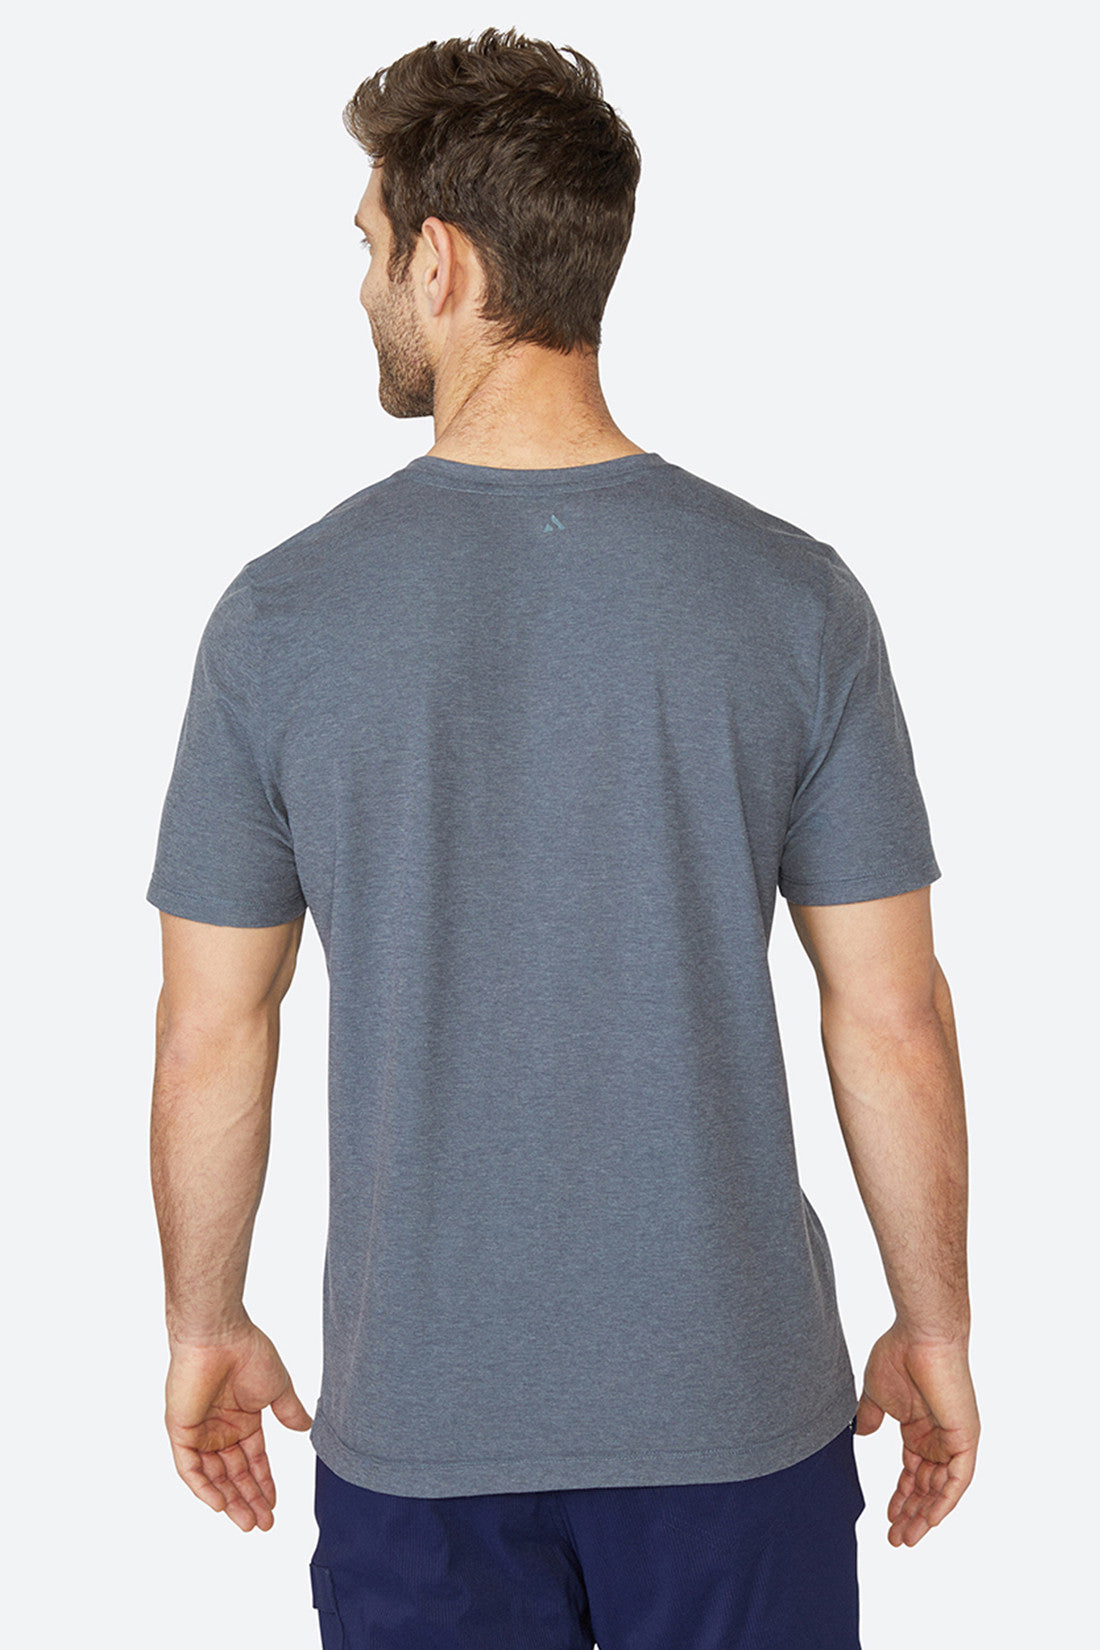 Cooling, skin-like, quick drying, light tech, lightweight, best quality, Standard Tee - Grey Charcoal